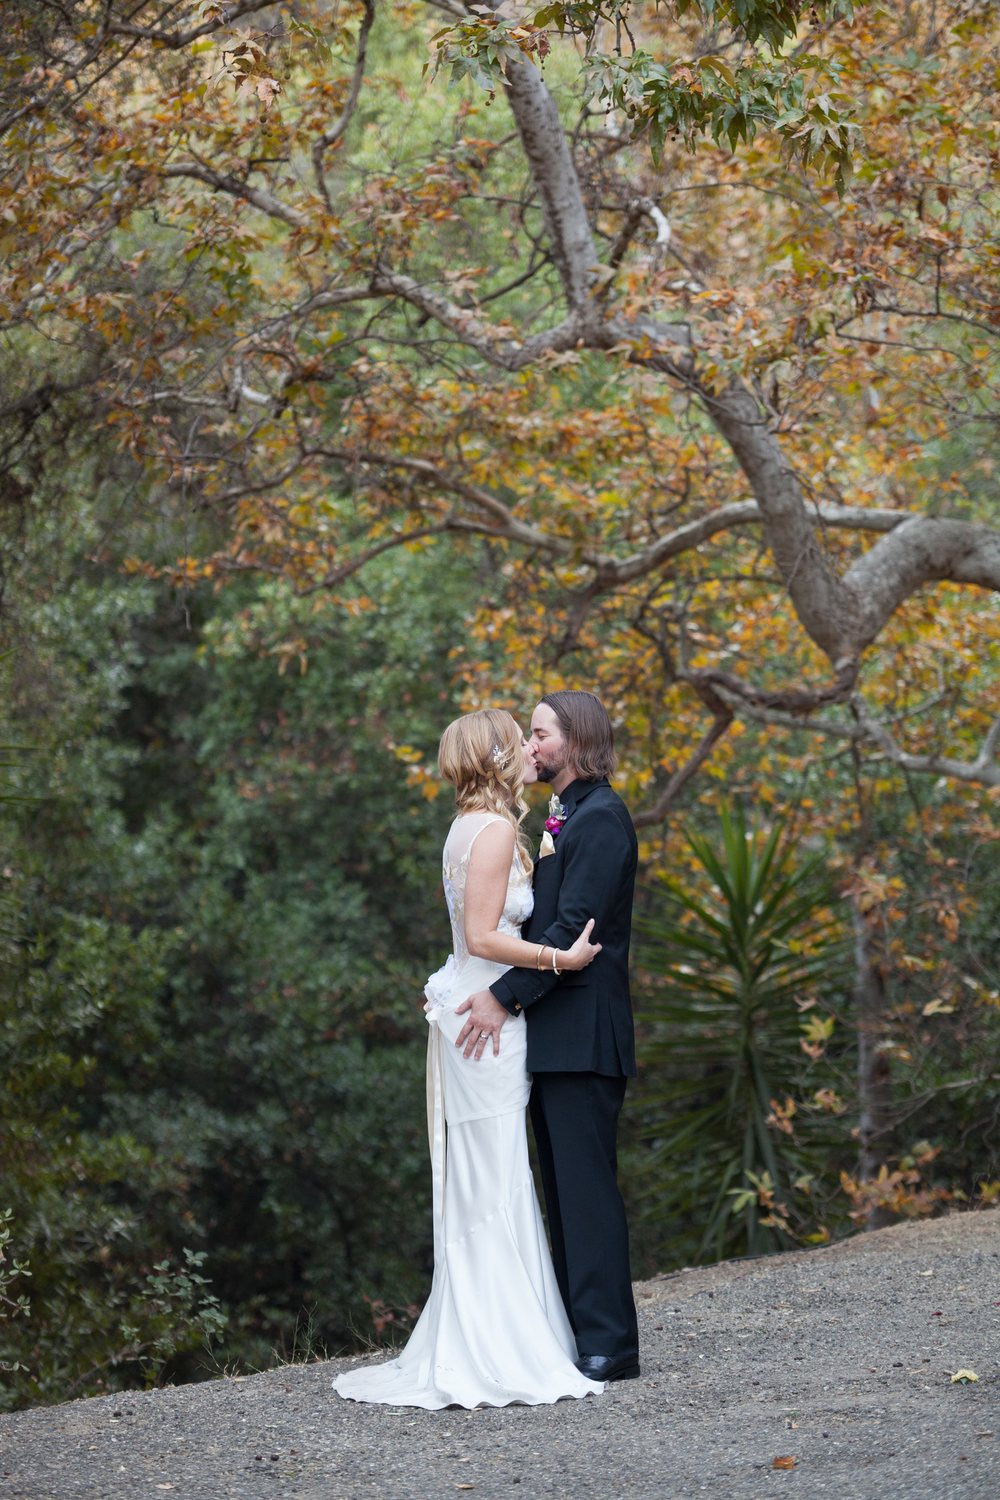 magnoliaeventdesign.com | A Wedding at Circle Bar B Ranch Photographed by Melissa Musgrove | Magnolia Event Design | Santa Barbara Wedding Planning and Design